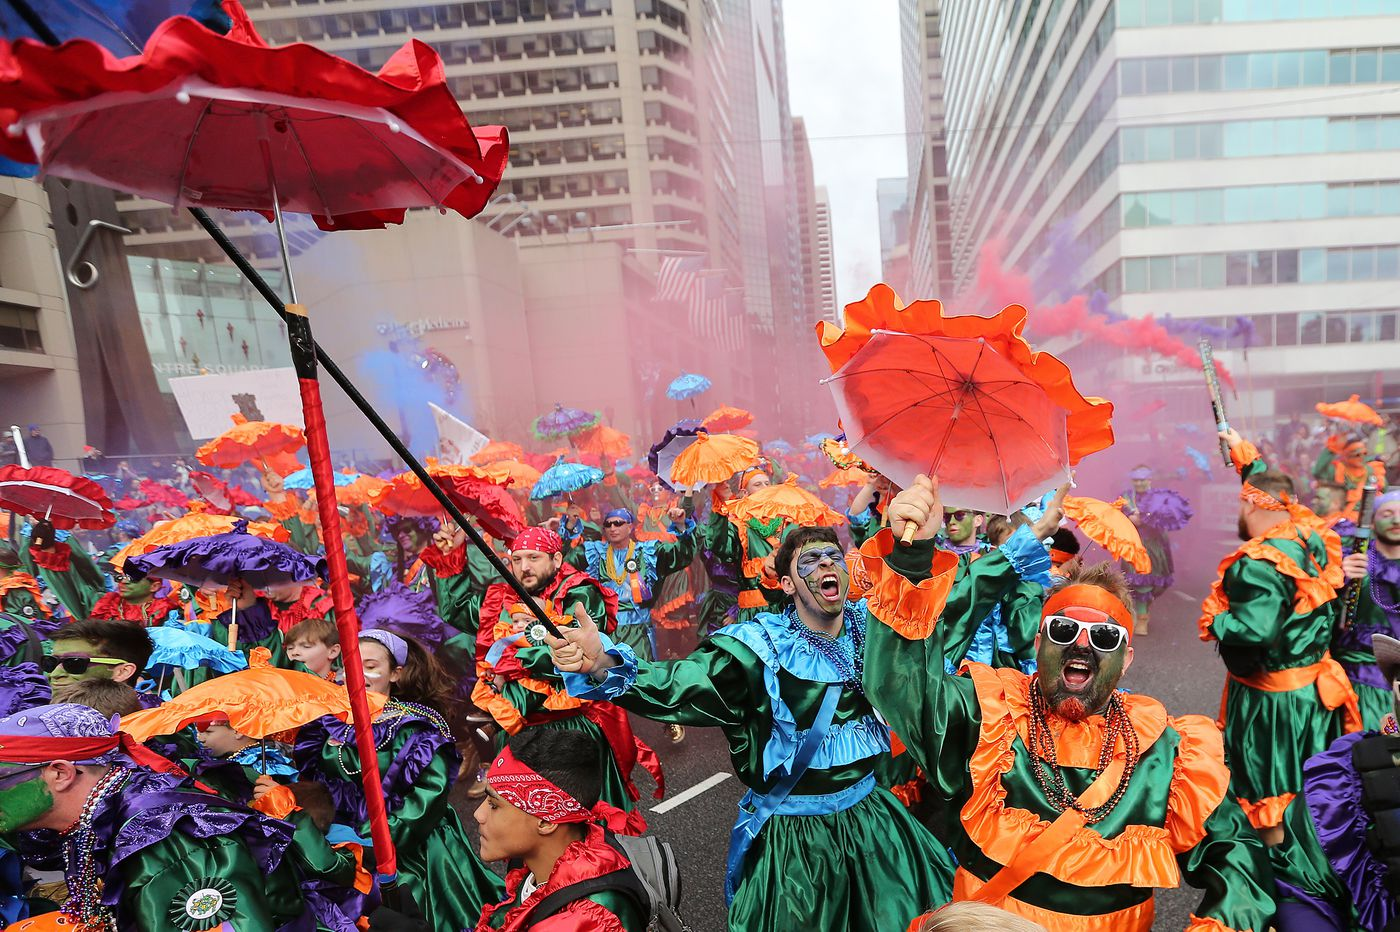 Warm weather draws big crowd to Mummers Parade